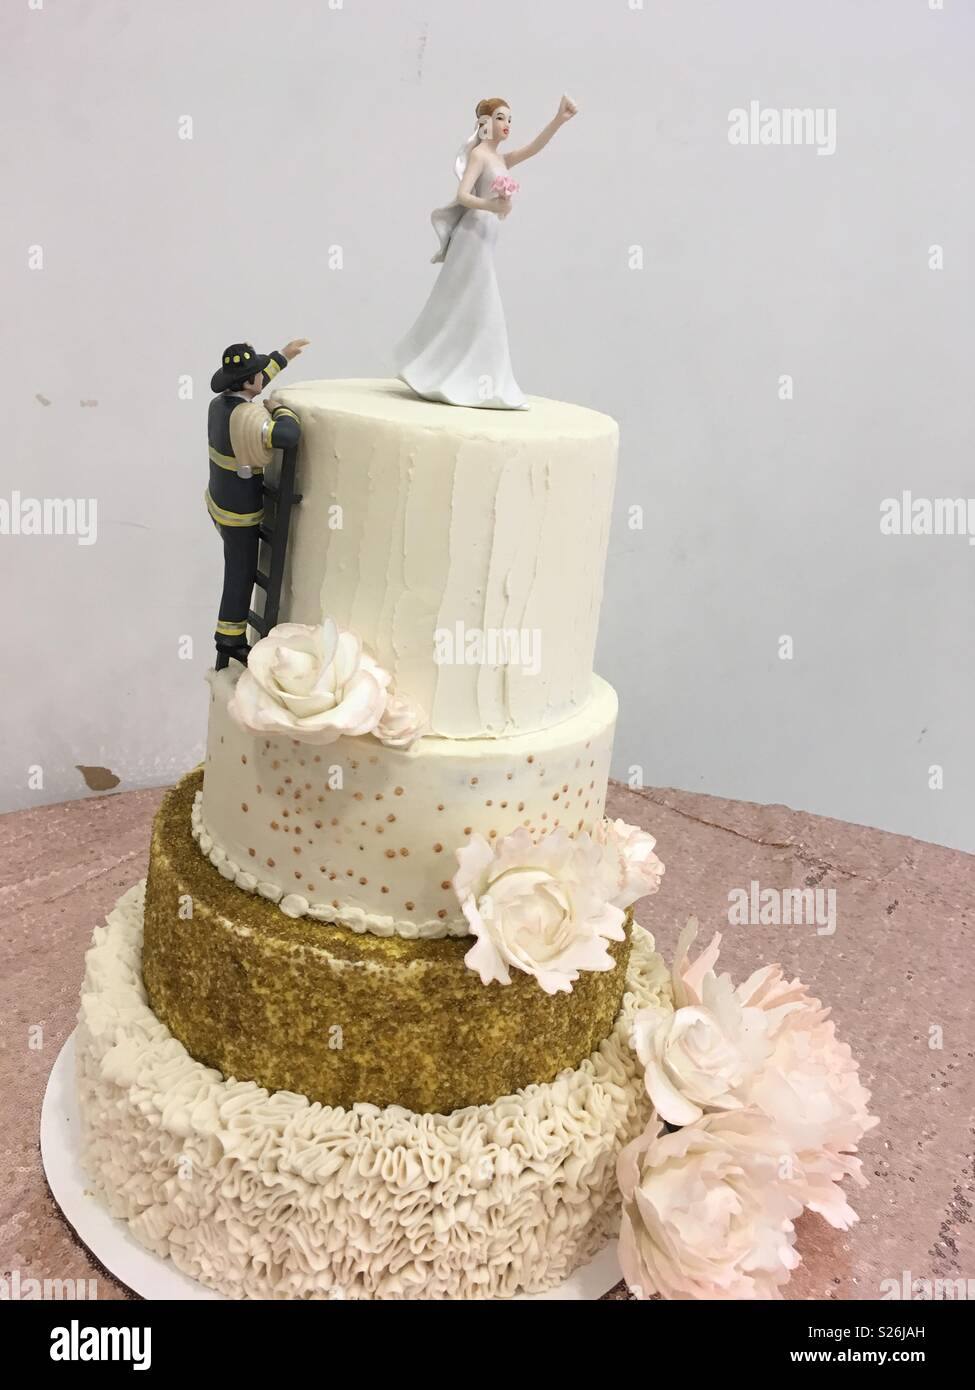 Dorable Firefighter Wedding Cake Topper Inspiration - Wedding Idea ...